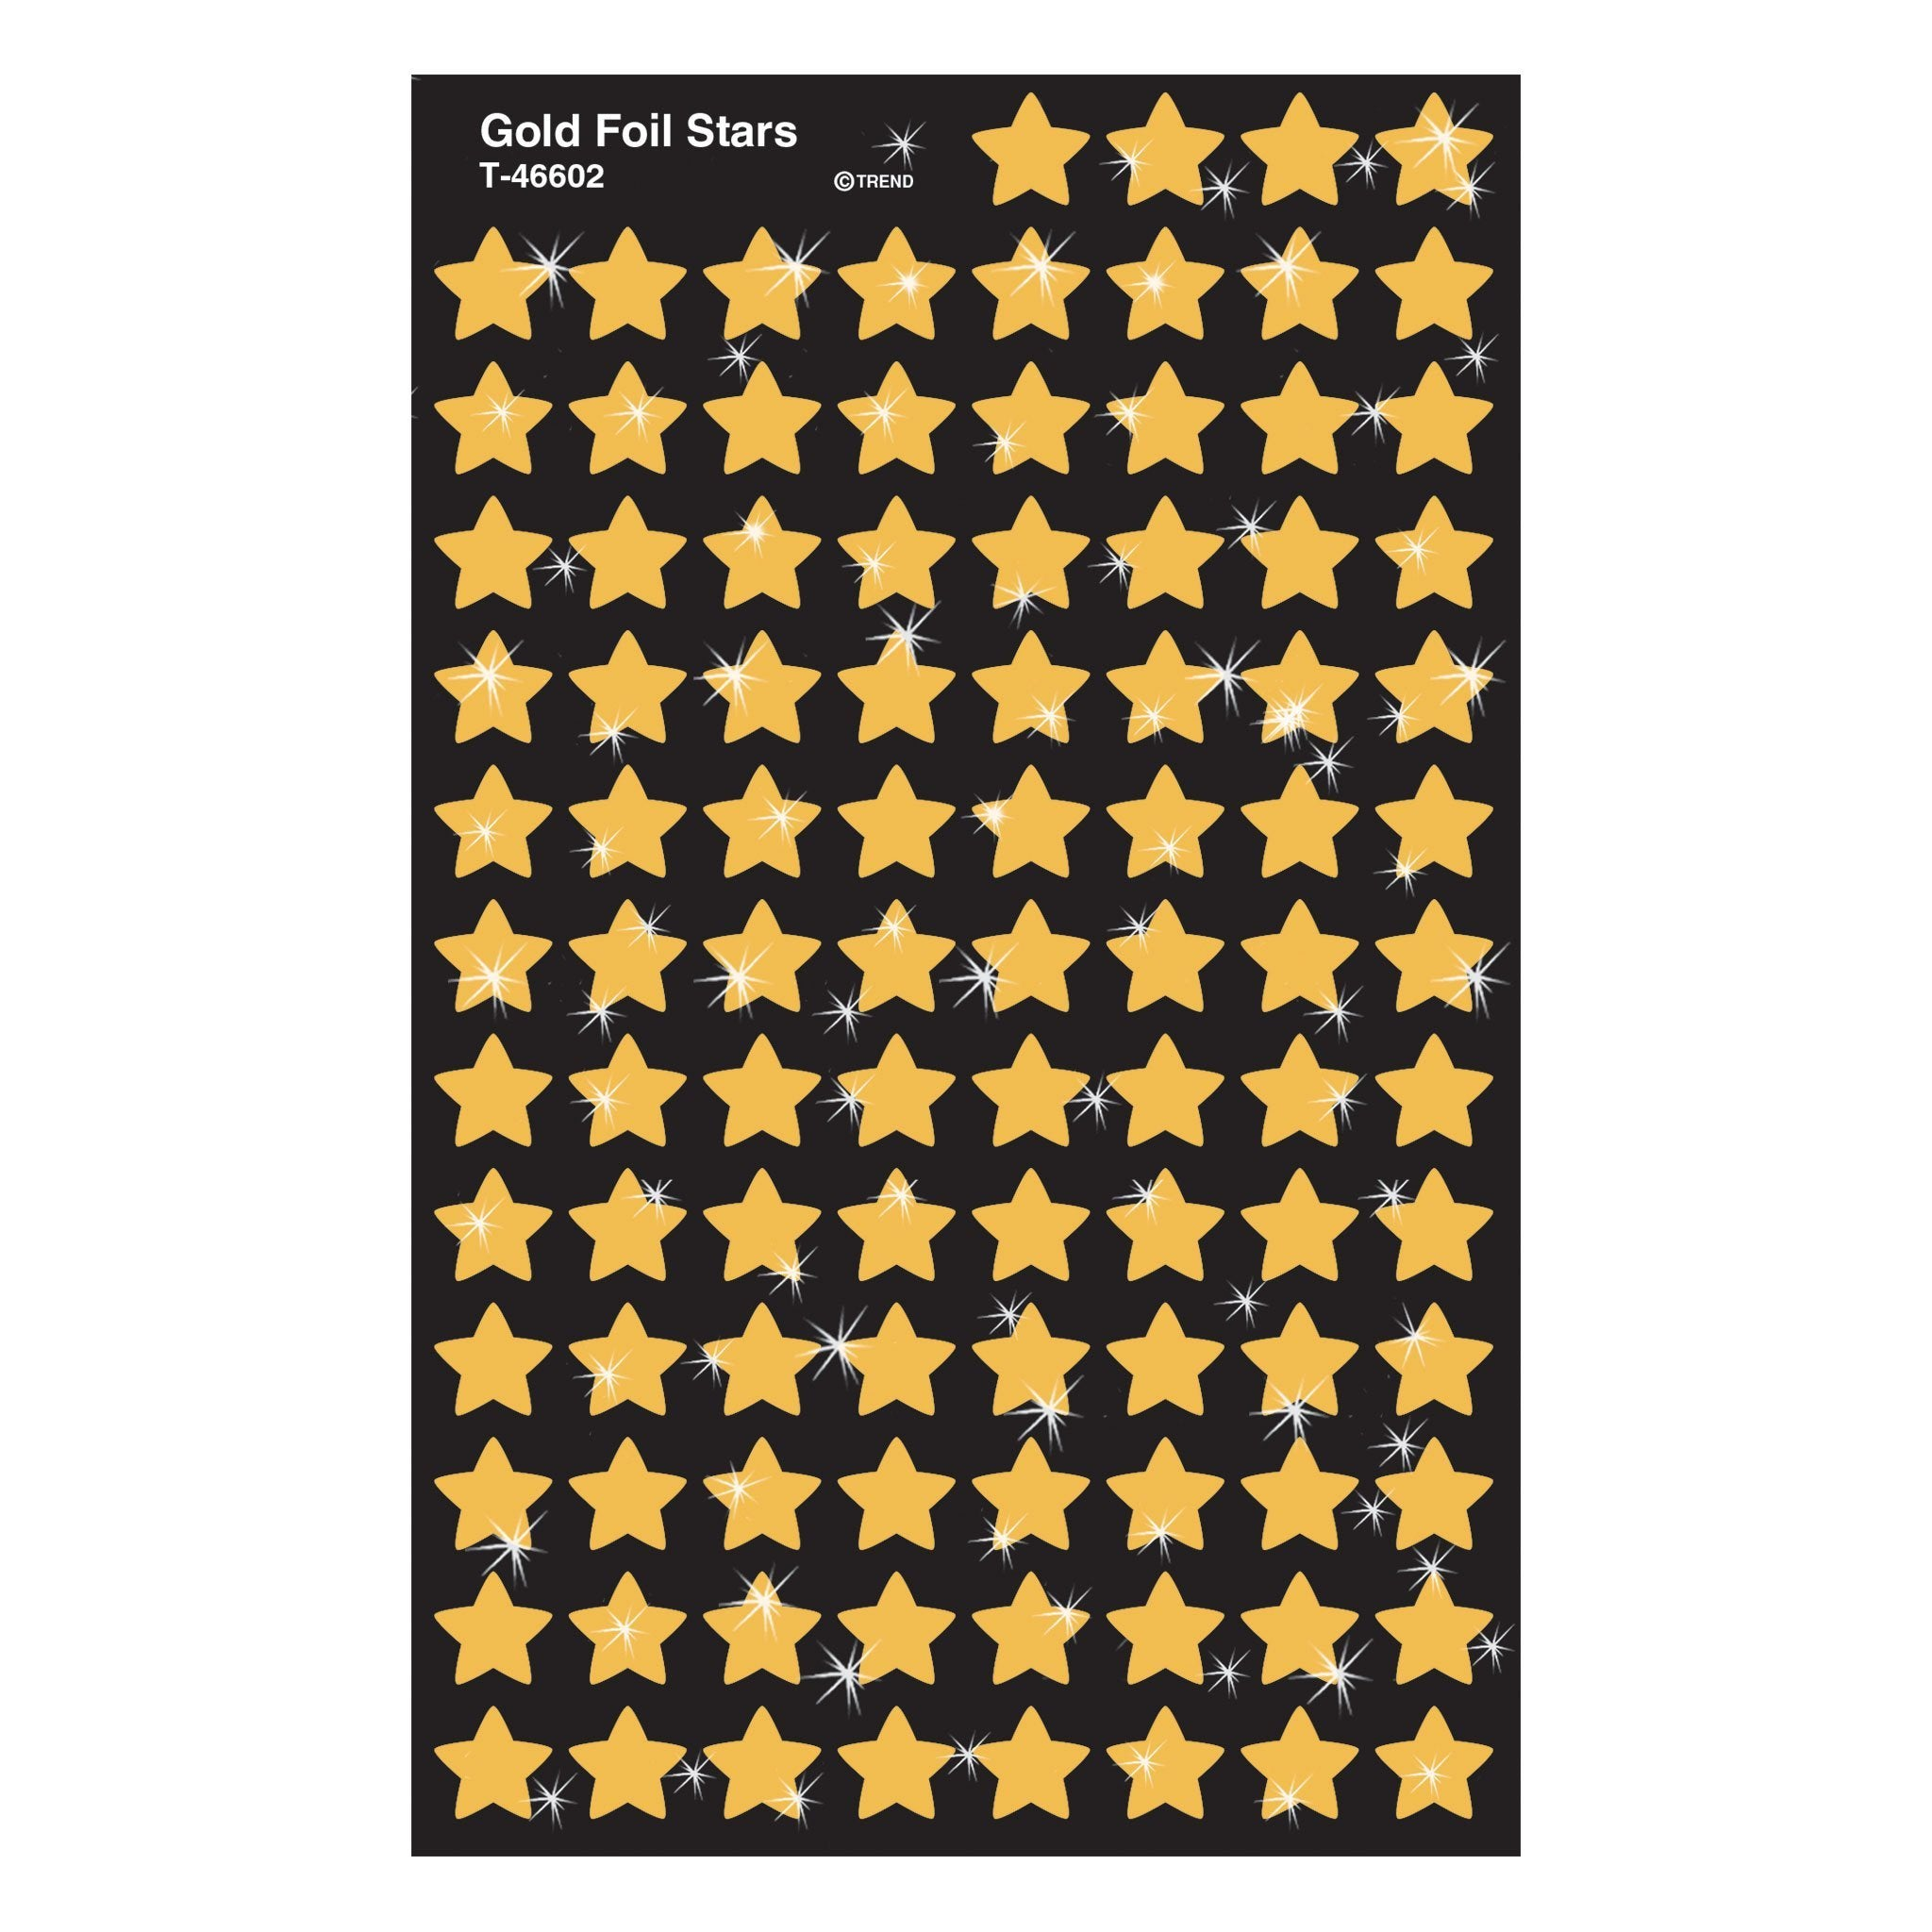 Gold Foil Stars Stickers